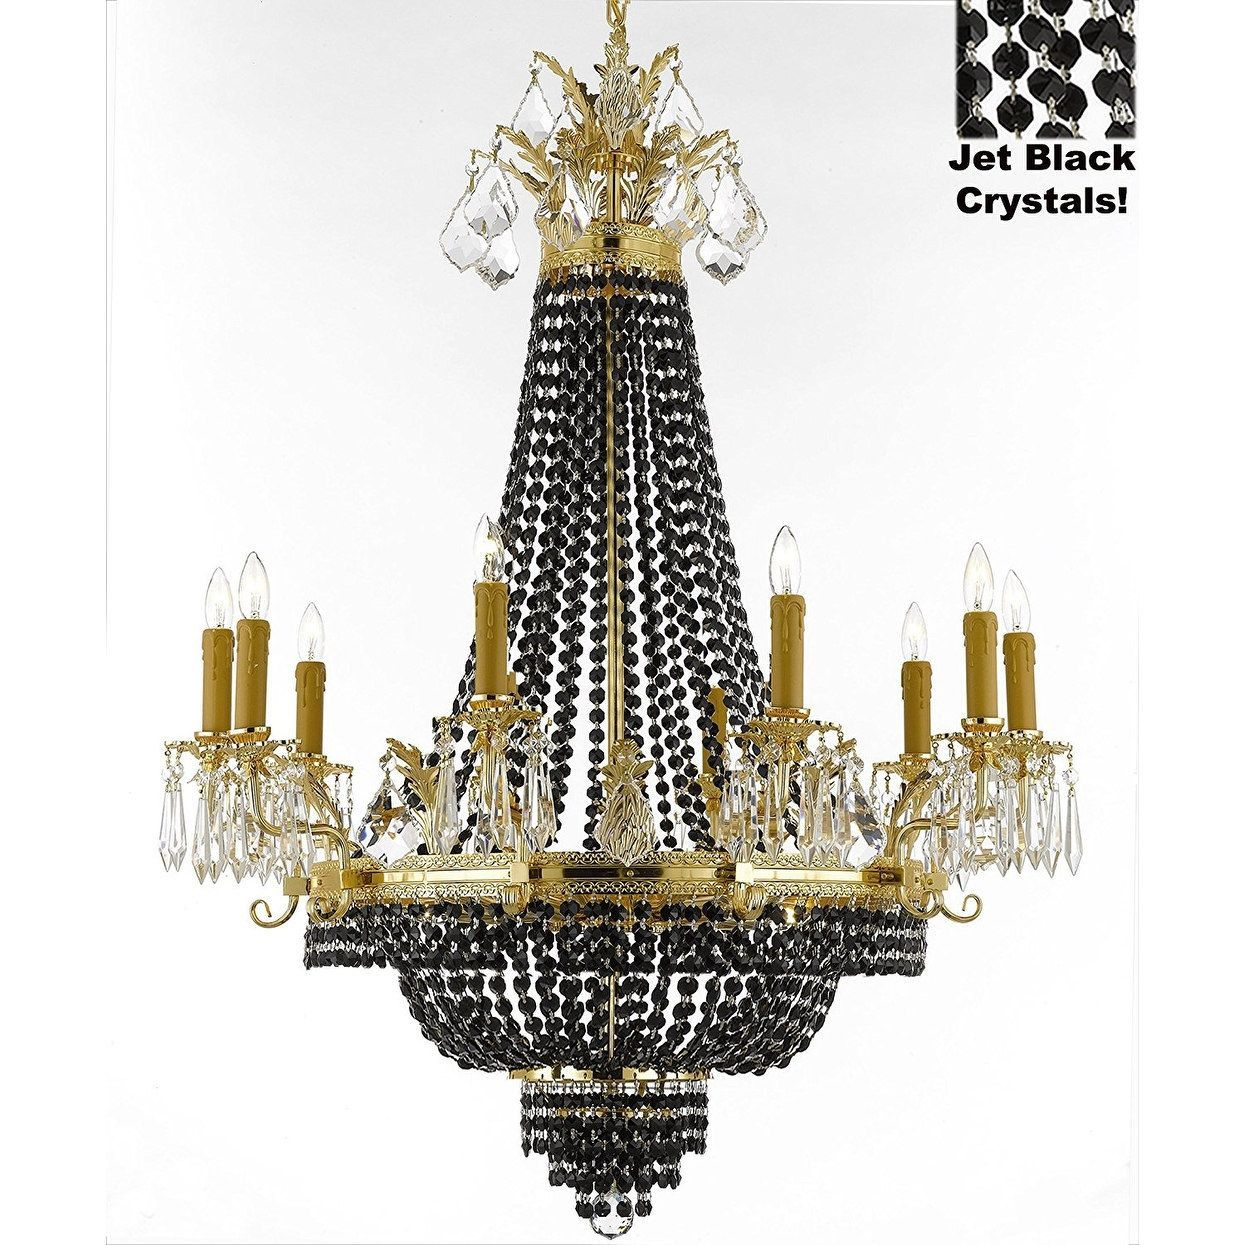 Gallery French Empire Crystal Chandelier Chandeliers H32 W25 Dressed With Jet Black Crystals